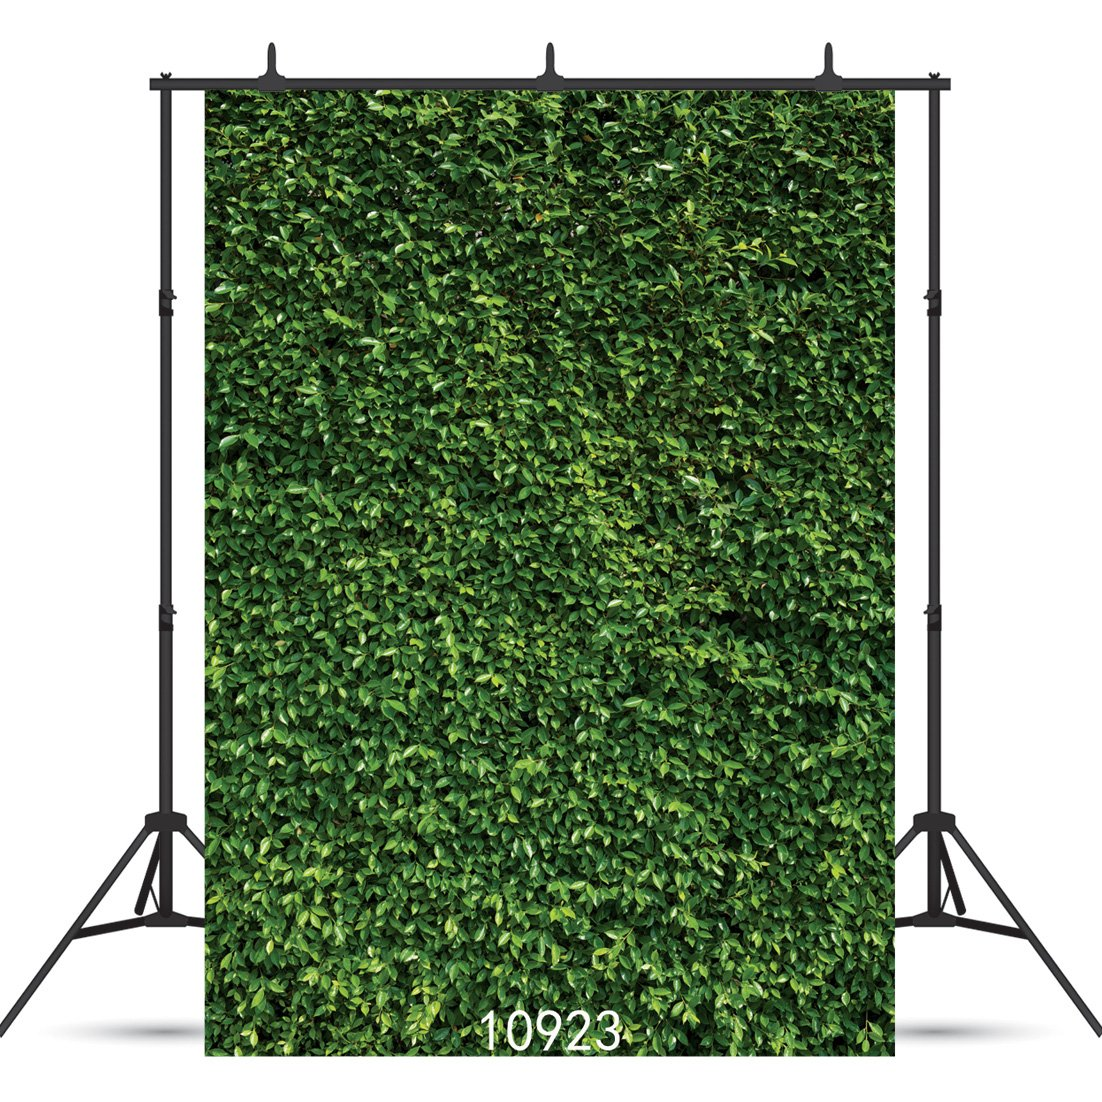 SJOLOON 5X7ft Spring Background Natural Green Lawn Party Photography Backdrop Newborn Baby Lover Wedding Photo Studio Props 10923